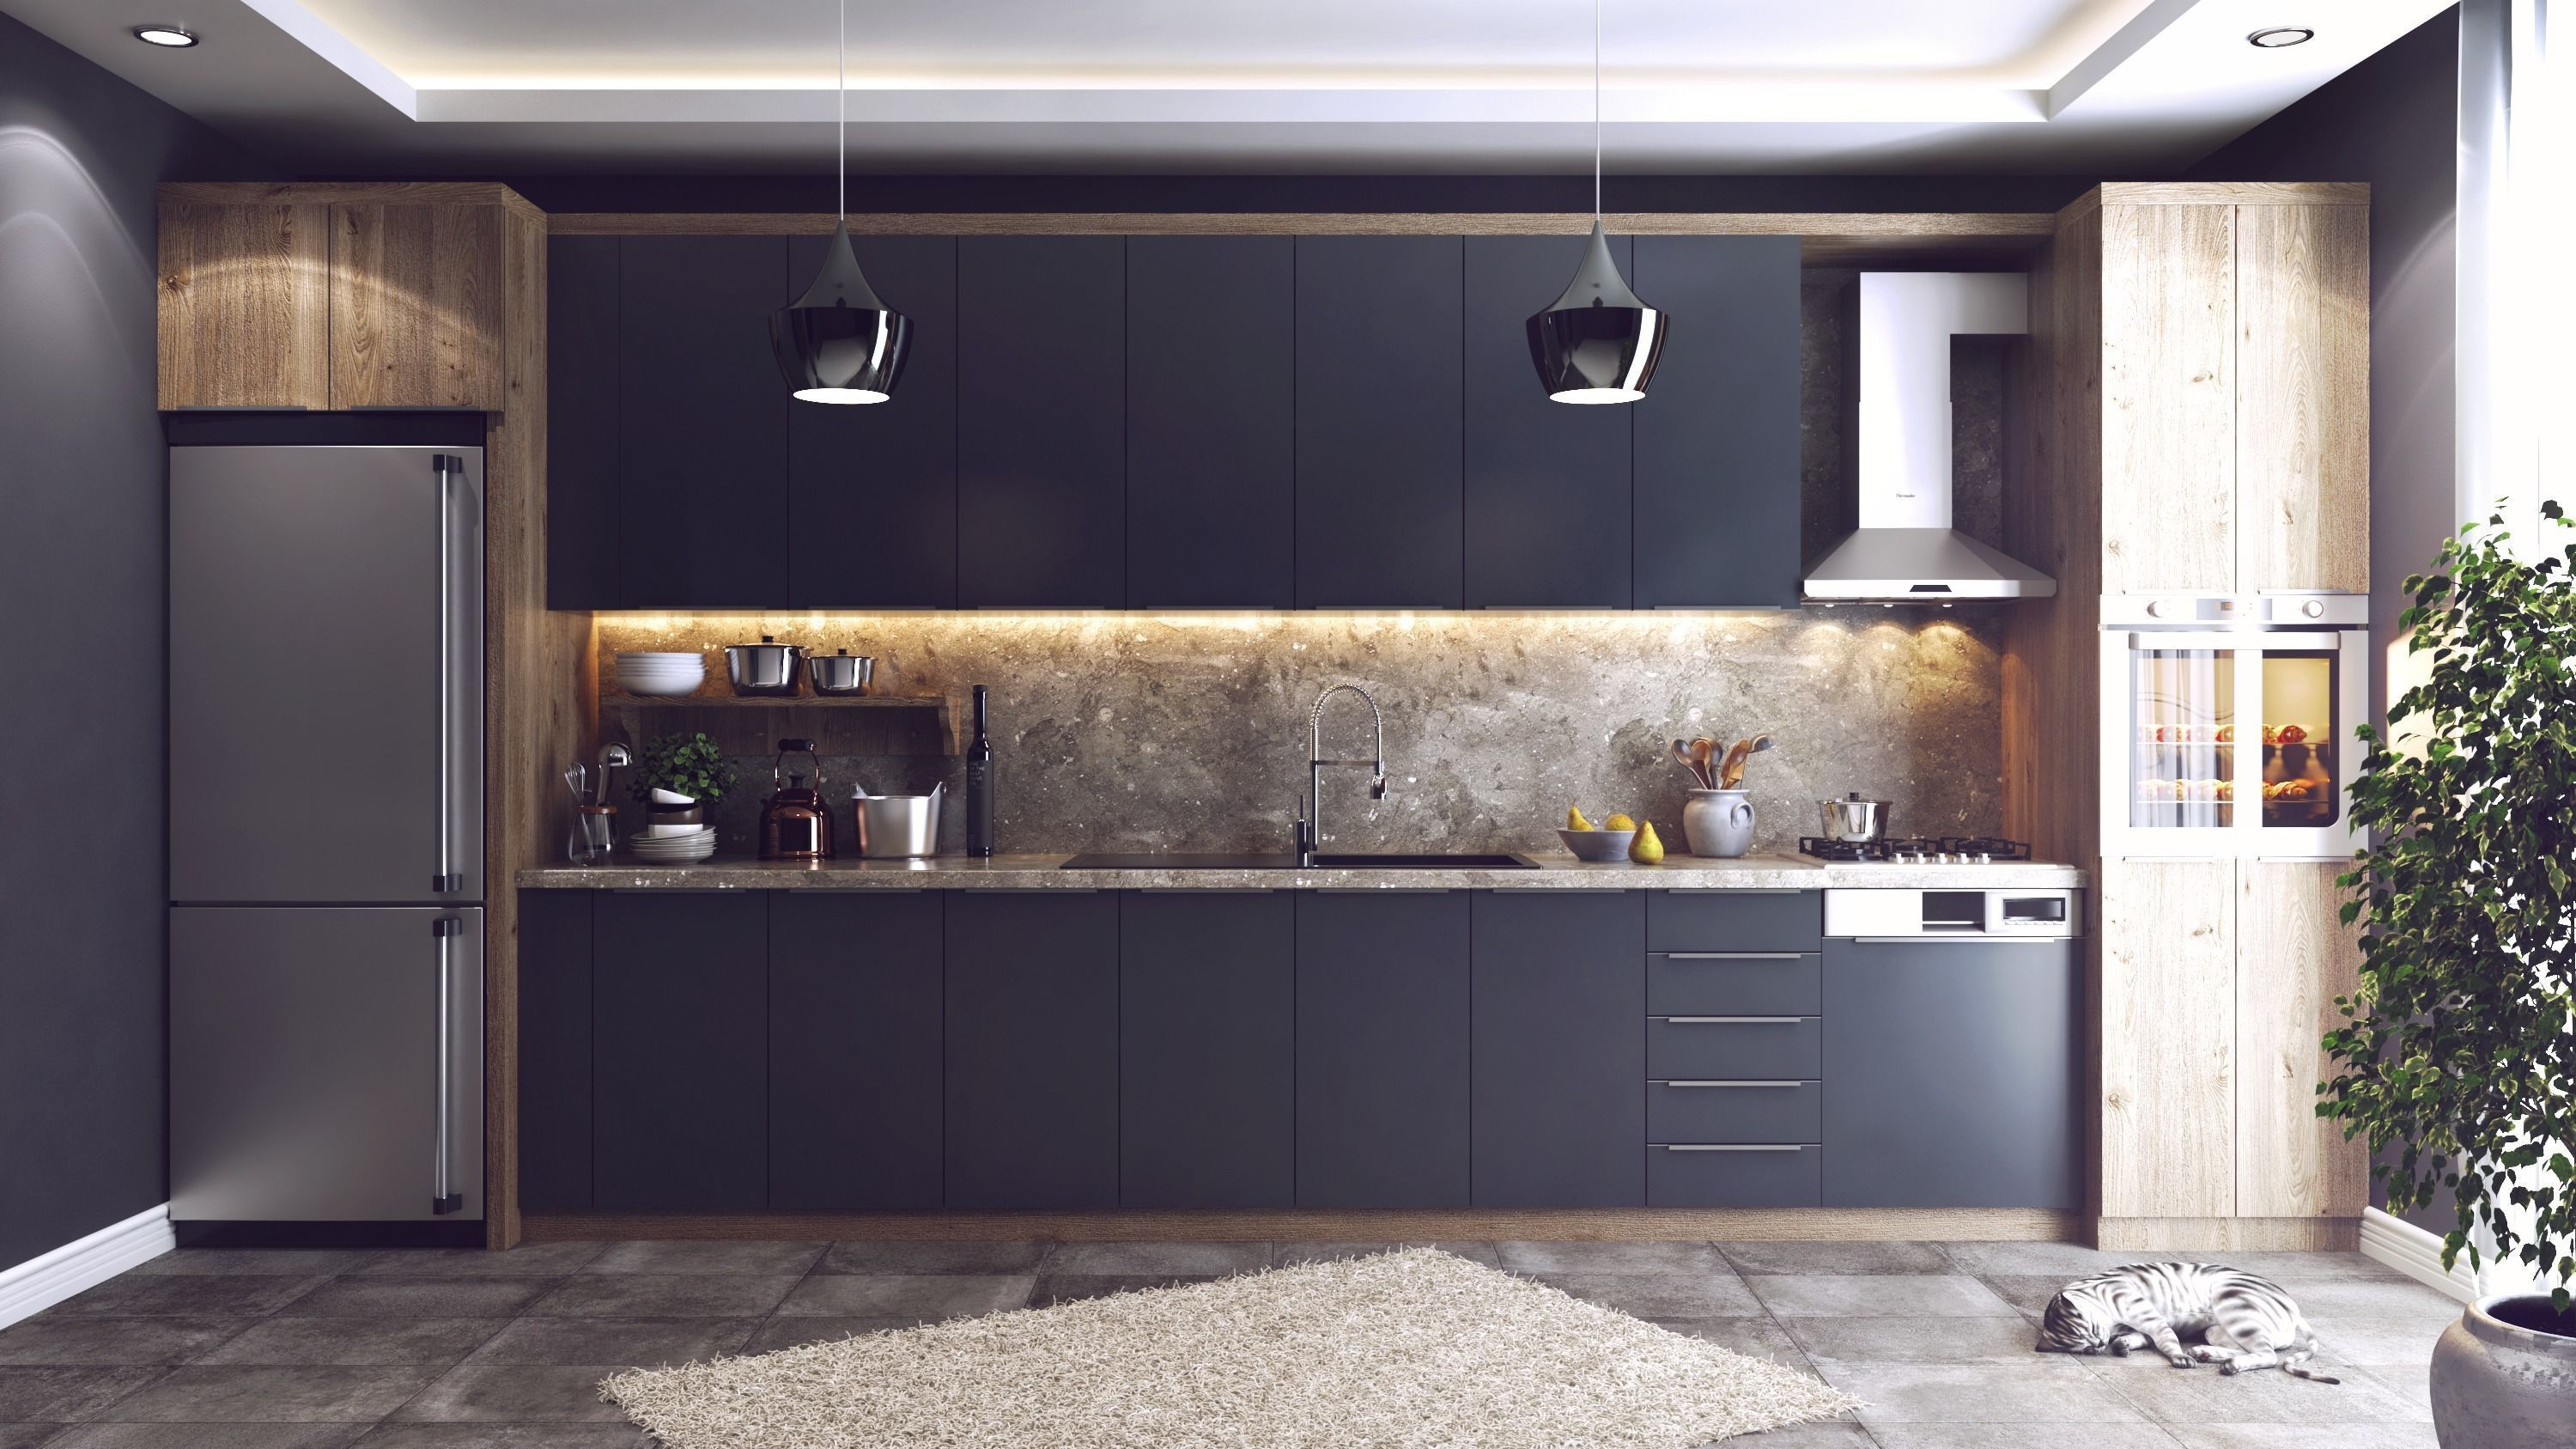 Modern Kitchen 7D Model Vray Settings and PSD File  7D model